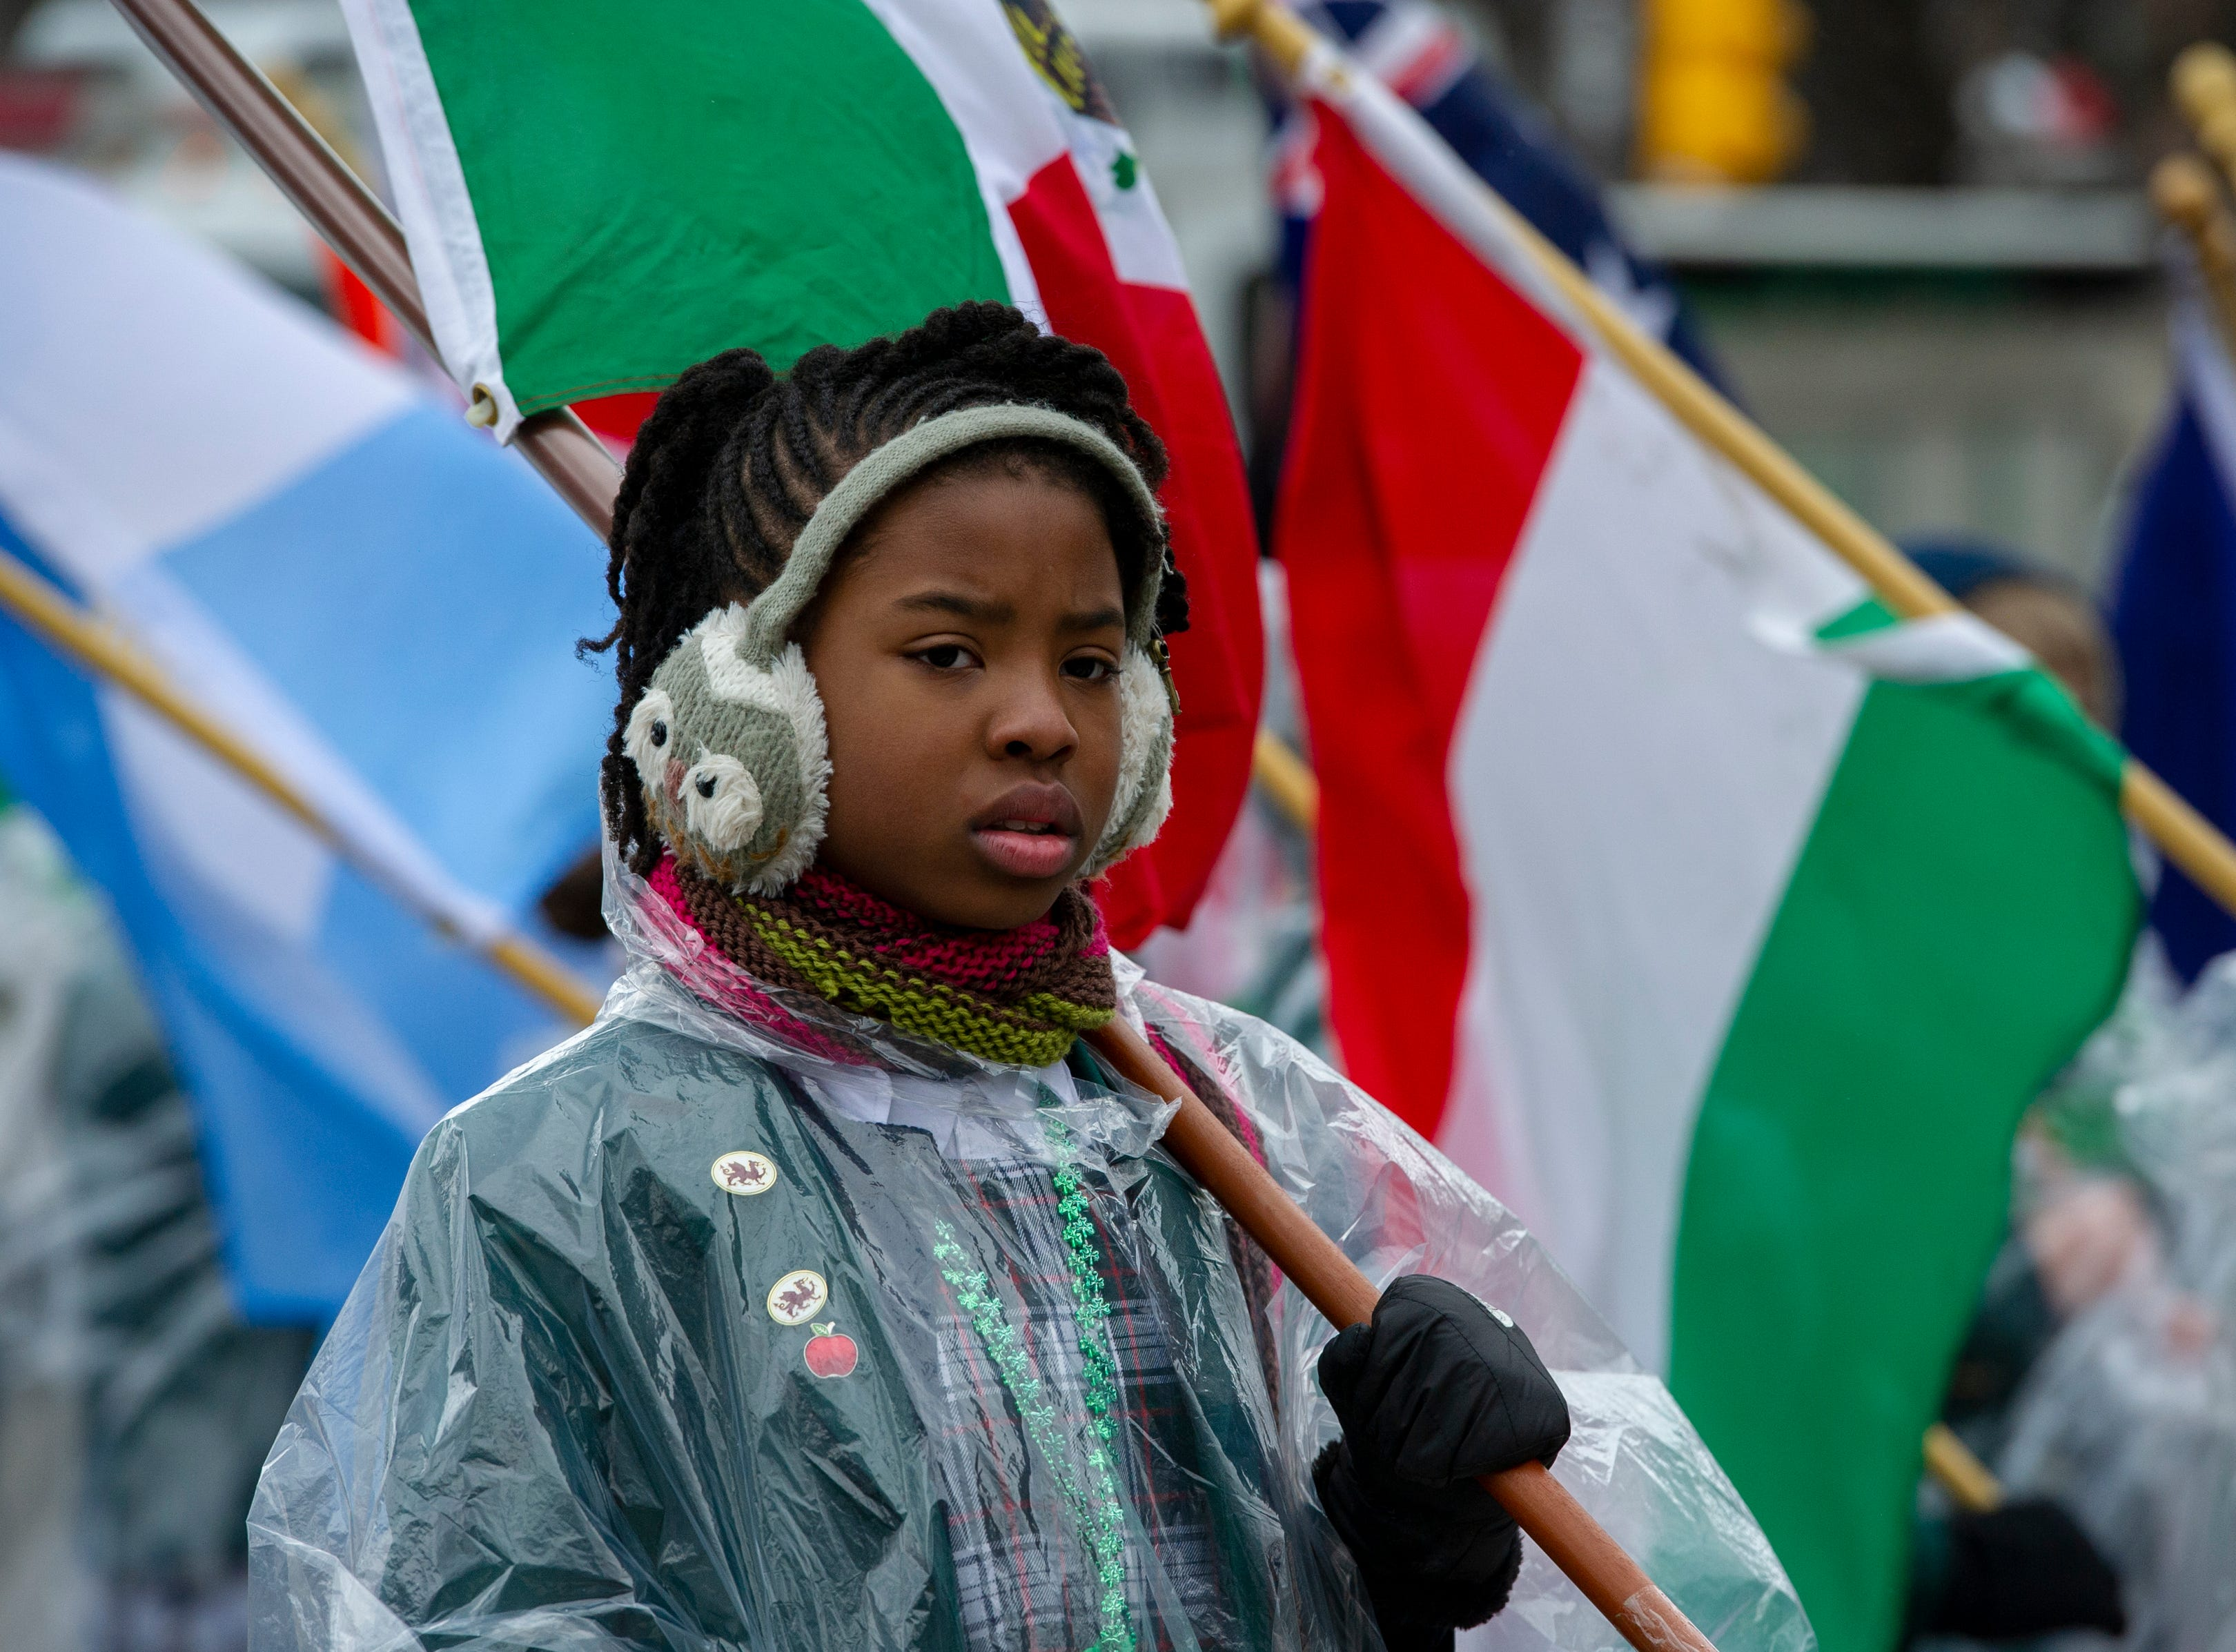 Chloe Moss, 10, waits for the St. Richards Episcopal School parade unit to head onto the route. The 39th annual St. Patrick's Day Parade navigated the streets of Indianapolis, Friday, March 15, 2019.